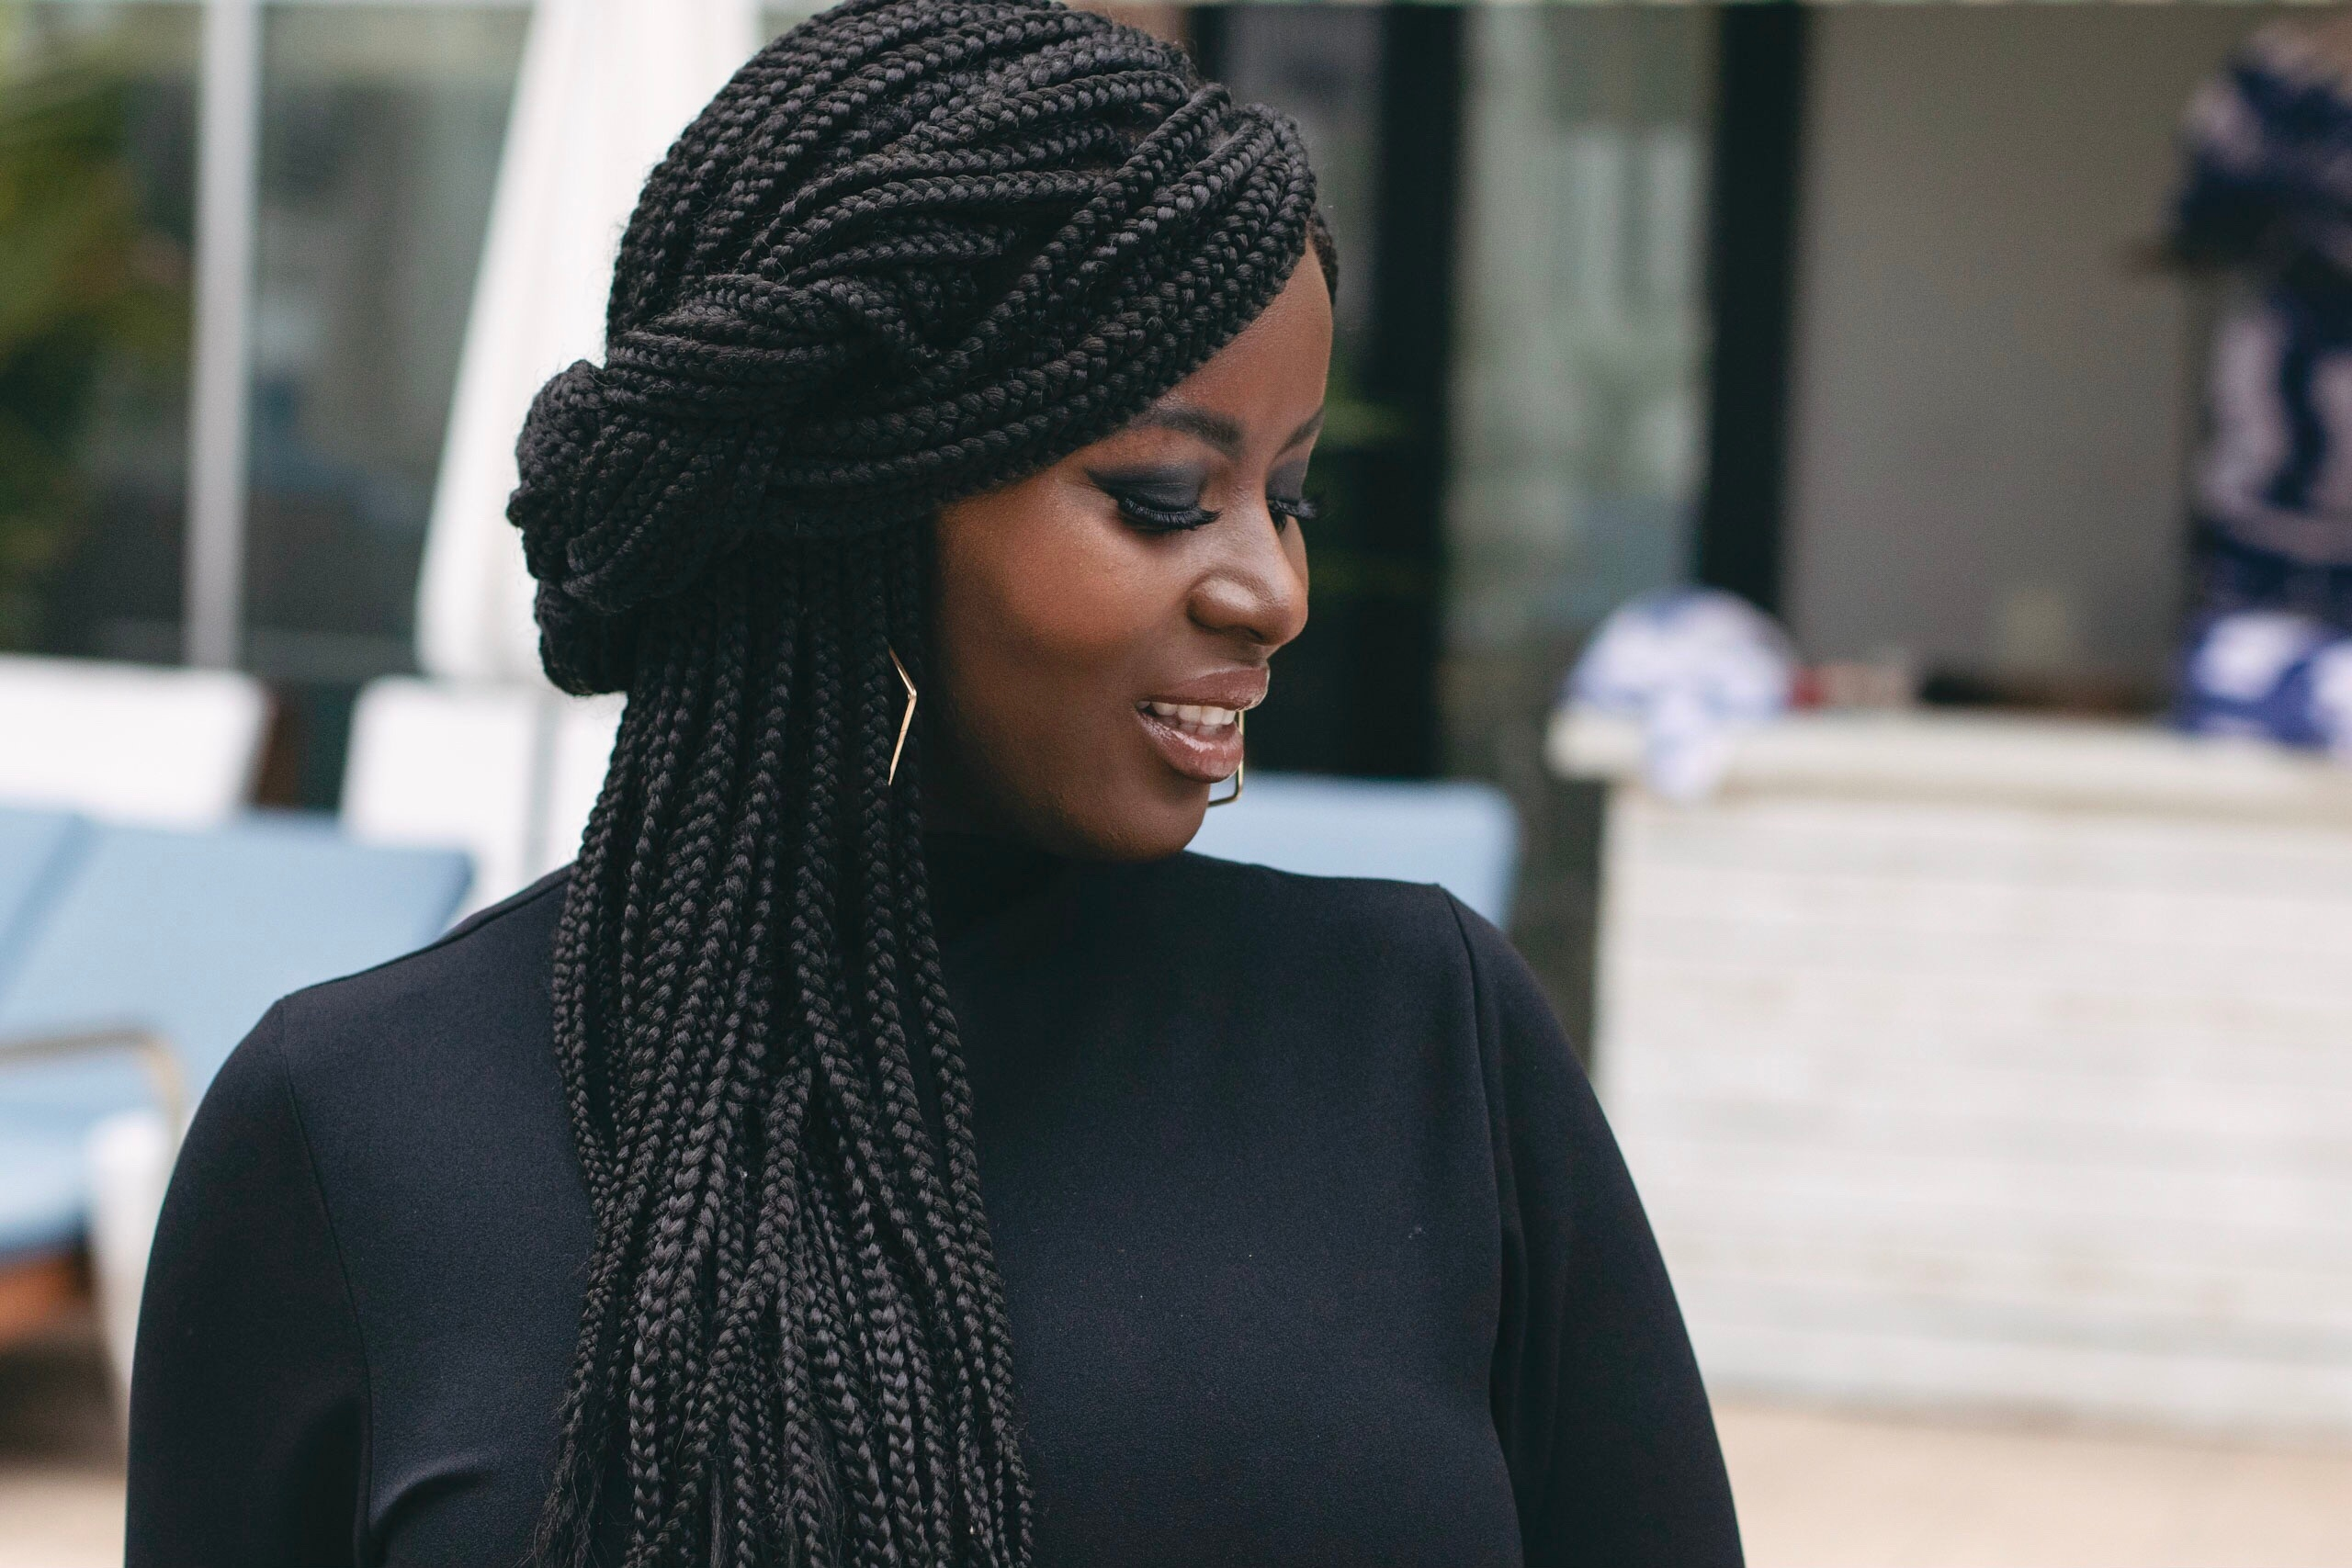 how to rock braided hair styles without damaging your edges